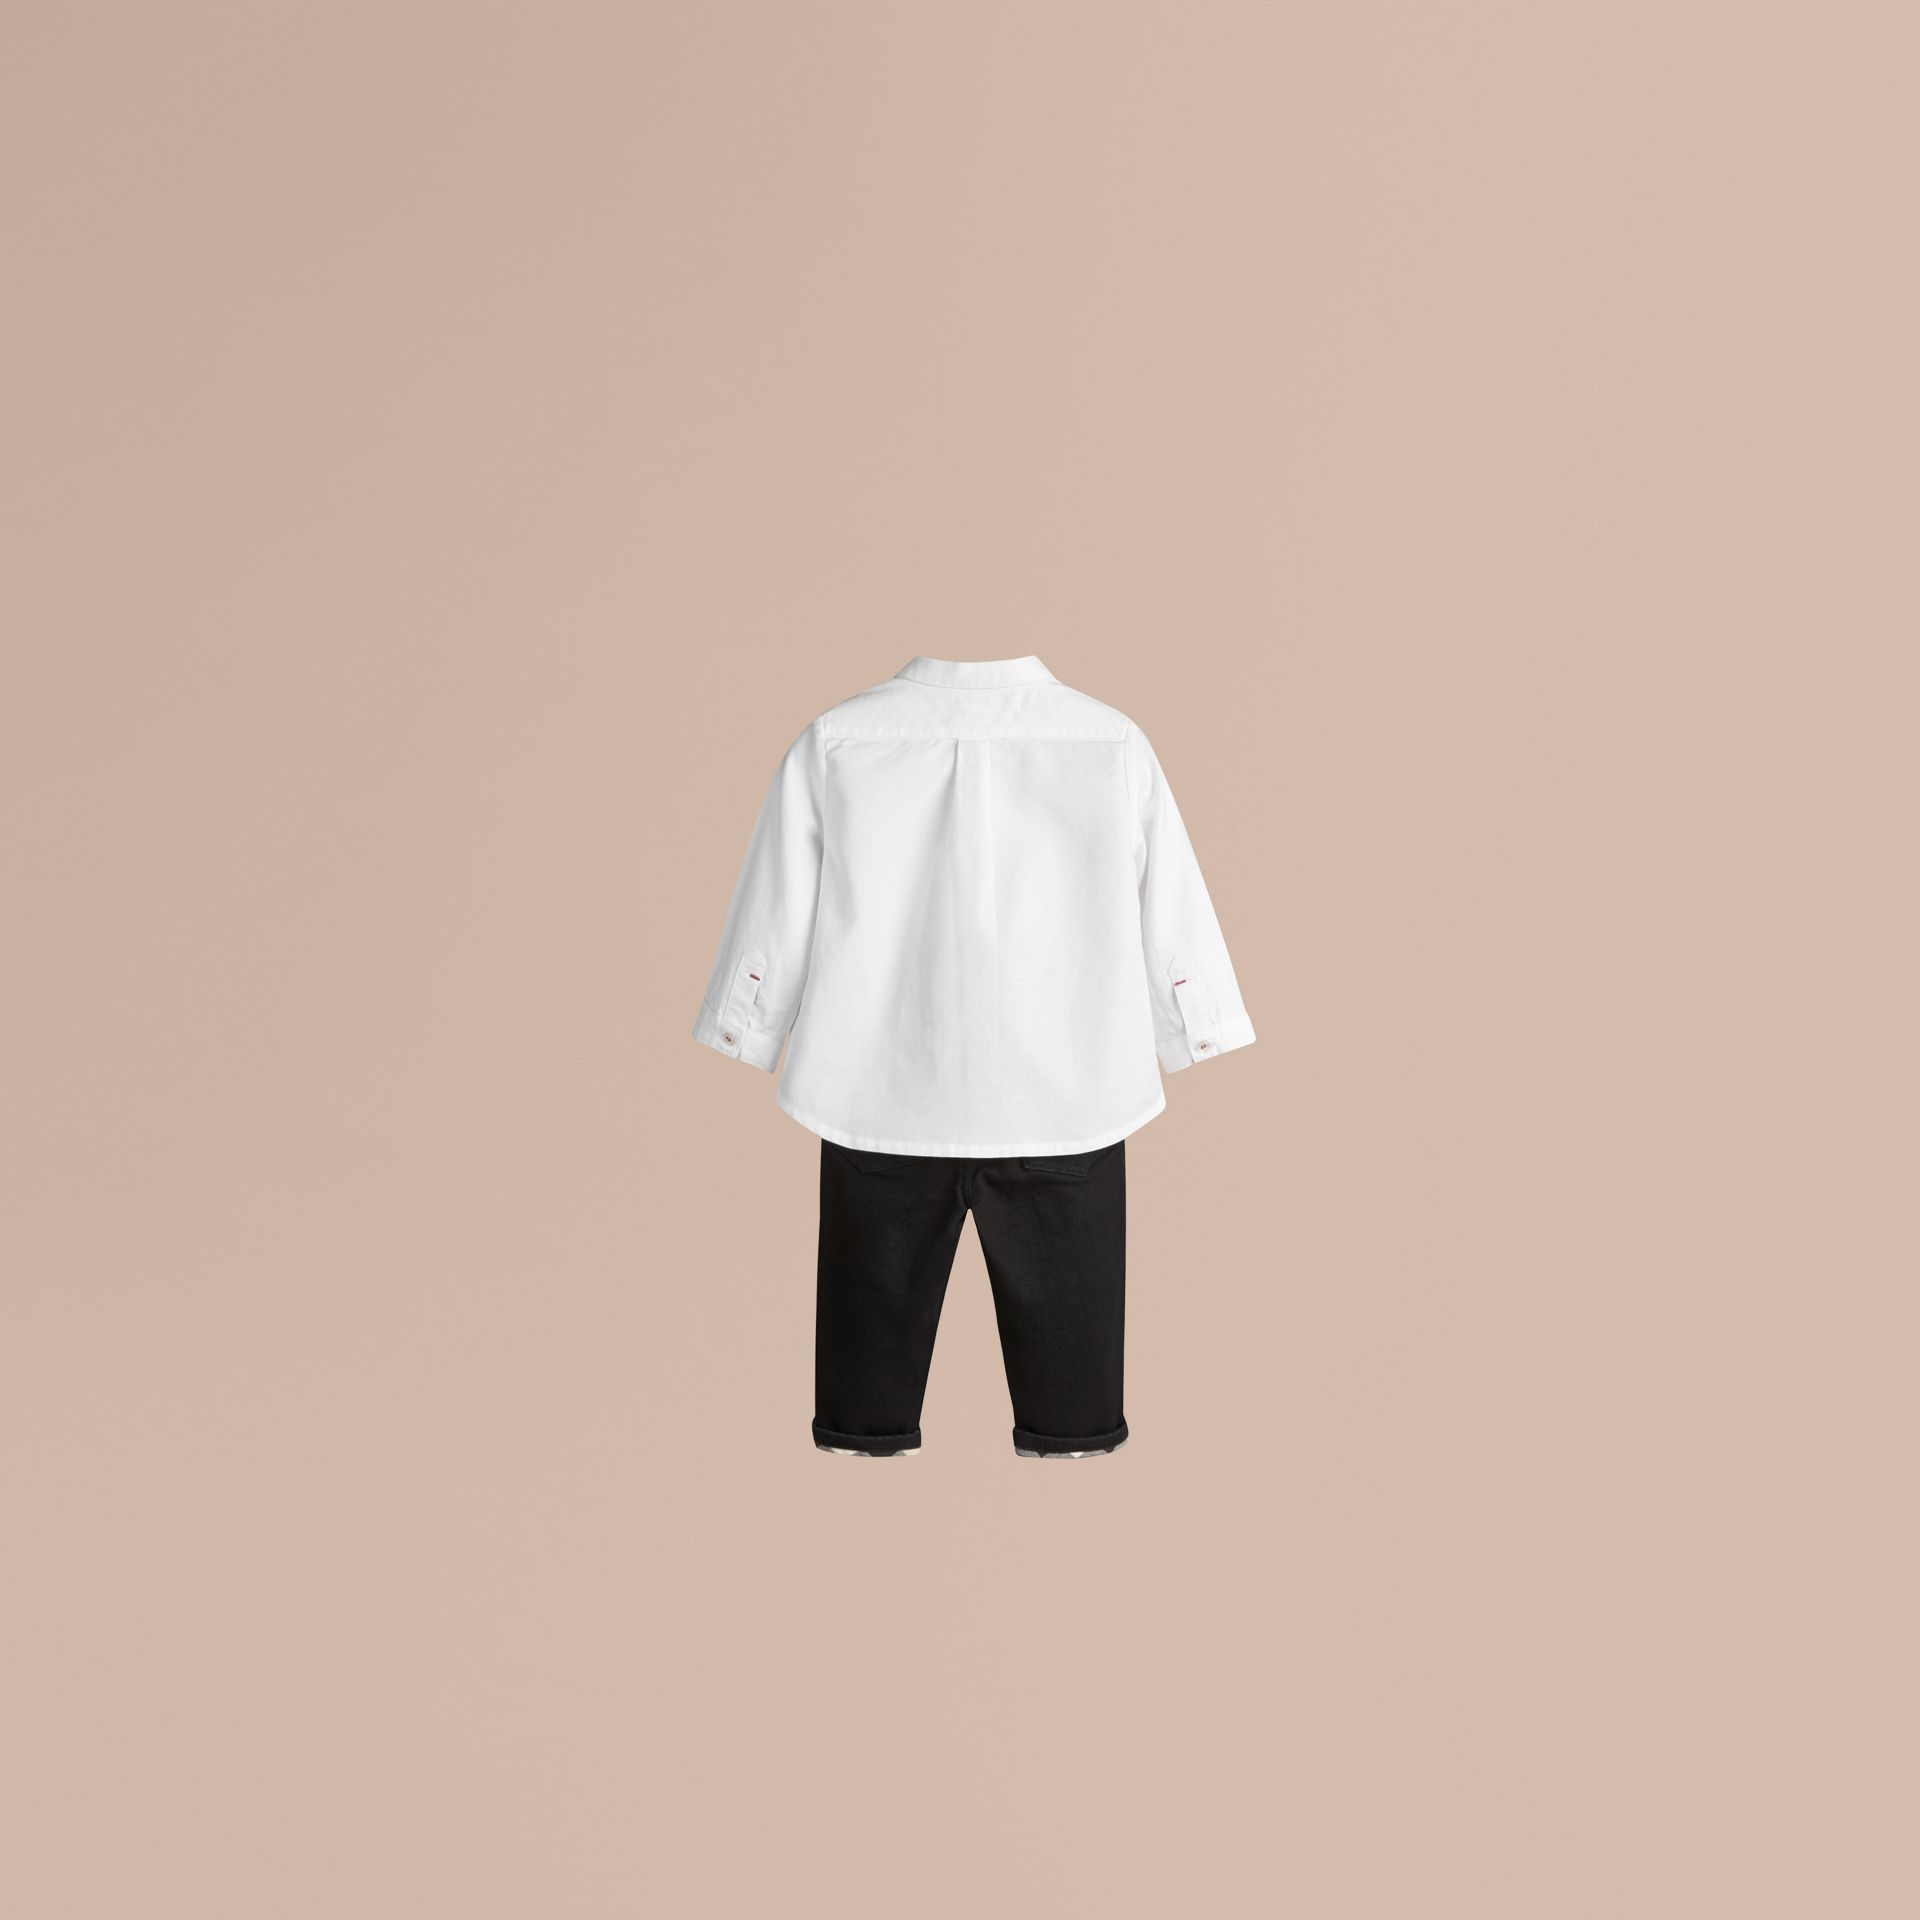 Chemise Oxford en coton (Blanc) - Garçon | Burberry - photo de la galerie 1